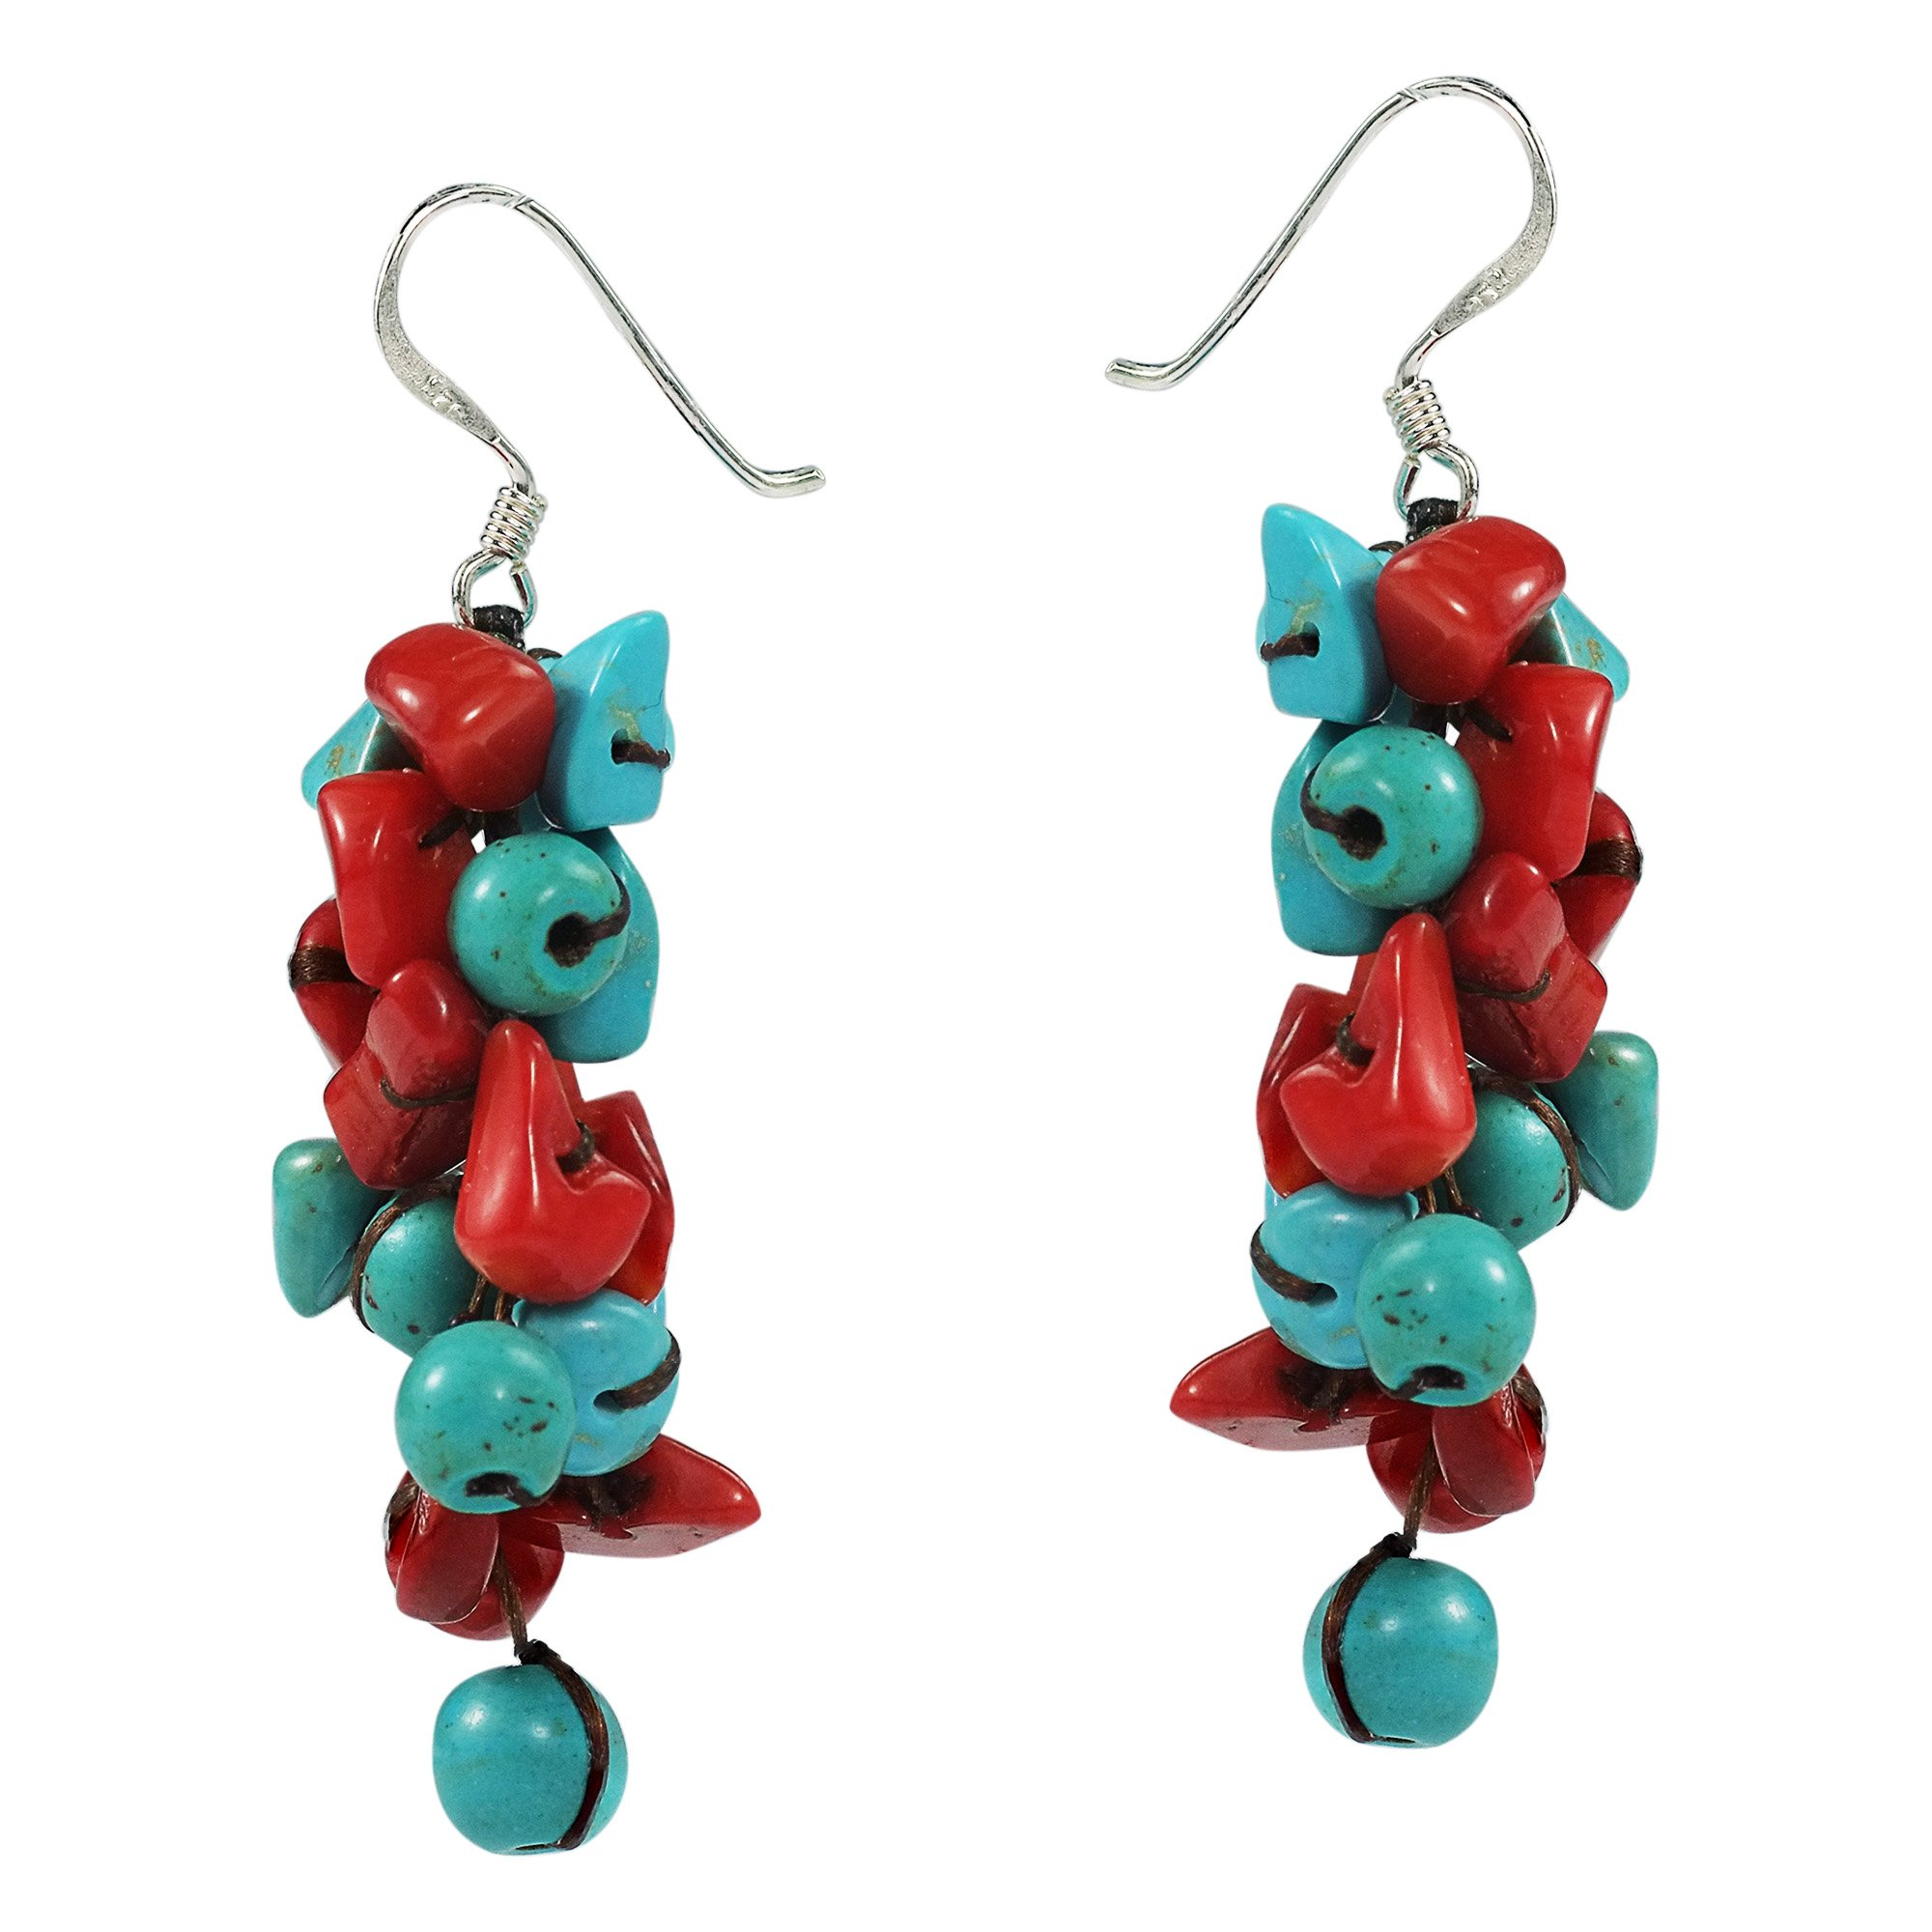 Cluster Simulated Turquoise and Reconstructed Coral Drop .925 Sterling Silver Earrings by AeraVida (Image #2)